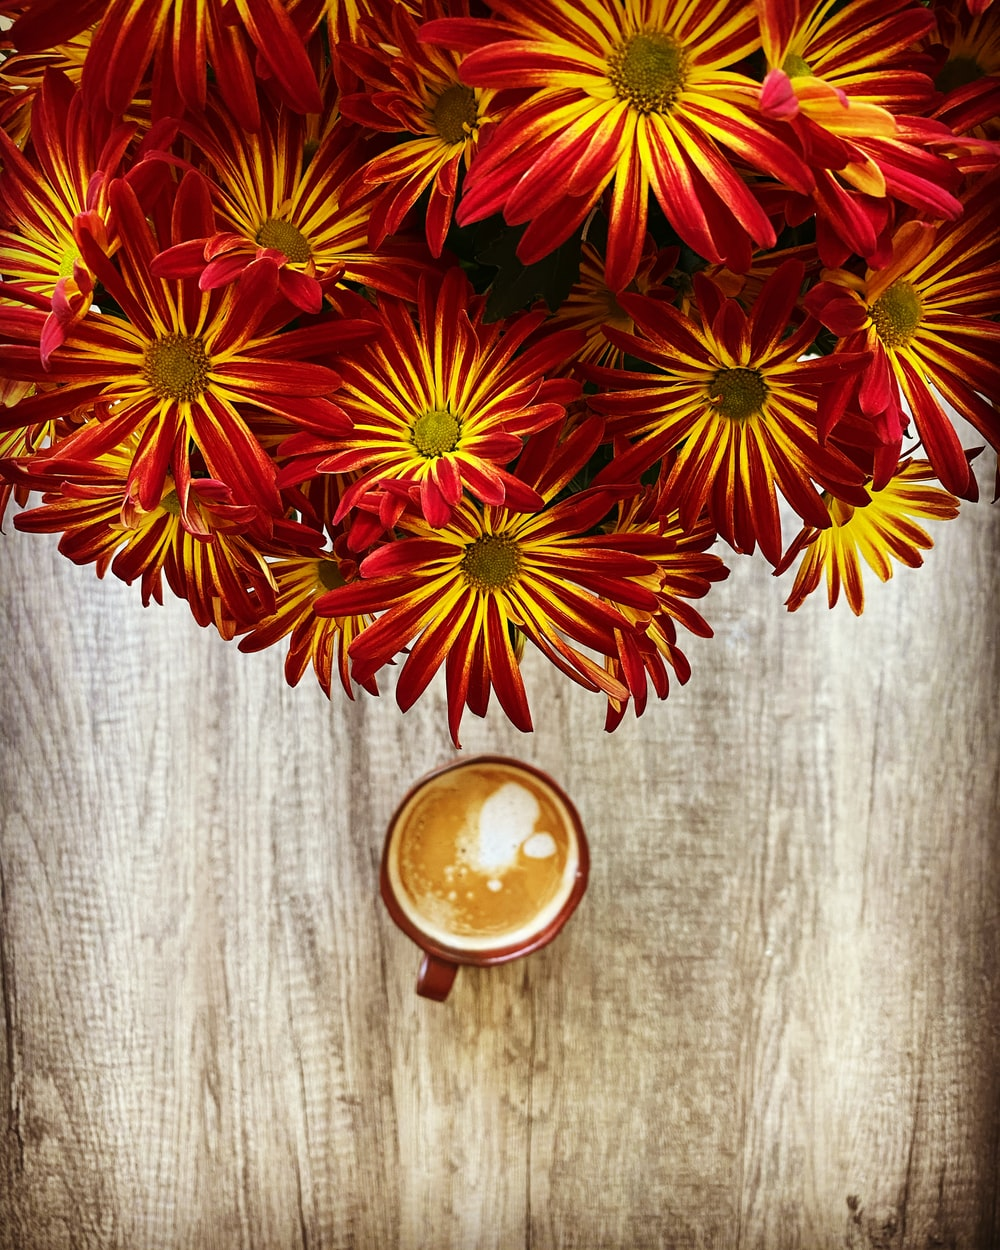 red and yellow flowers on brown wooden surface